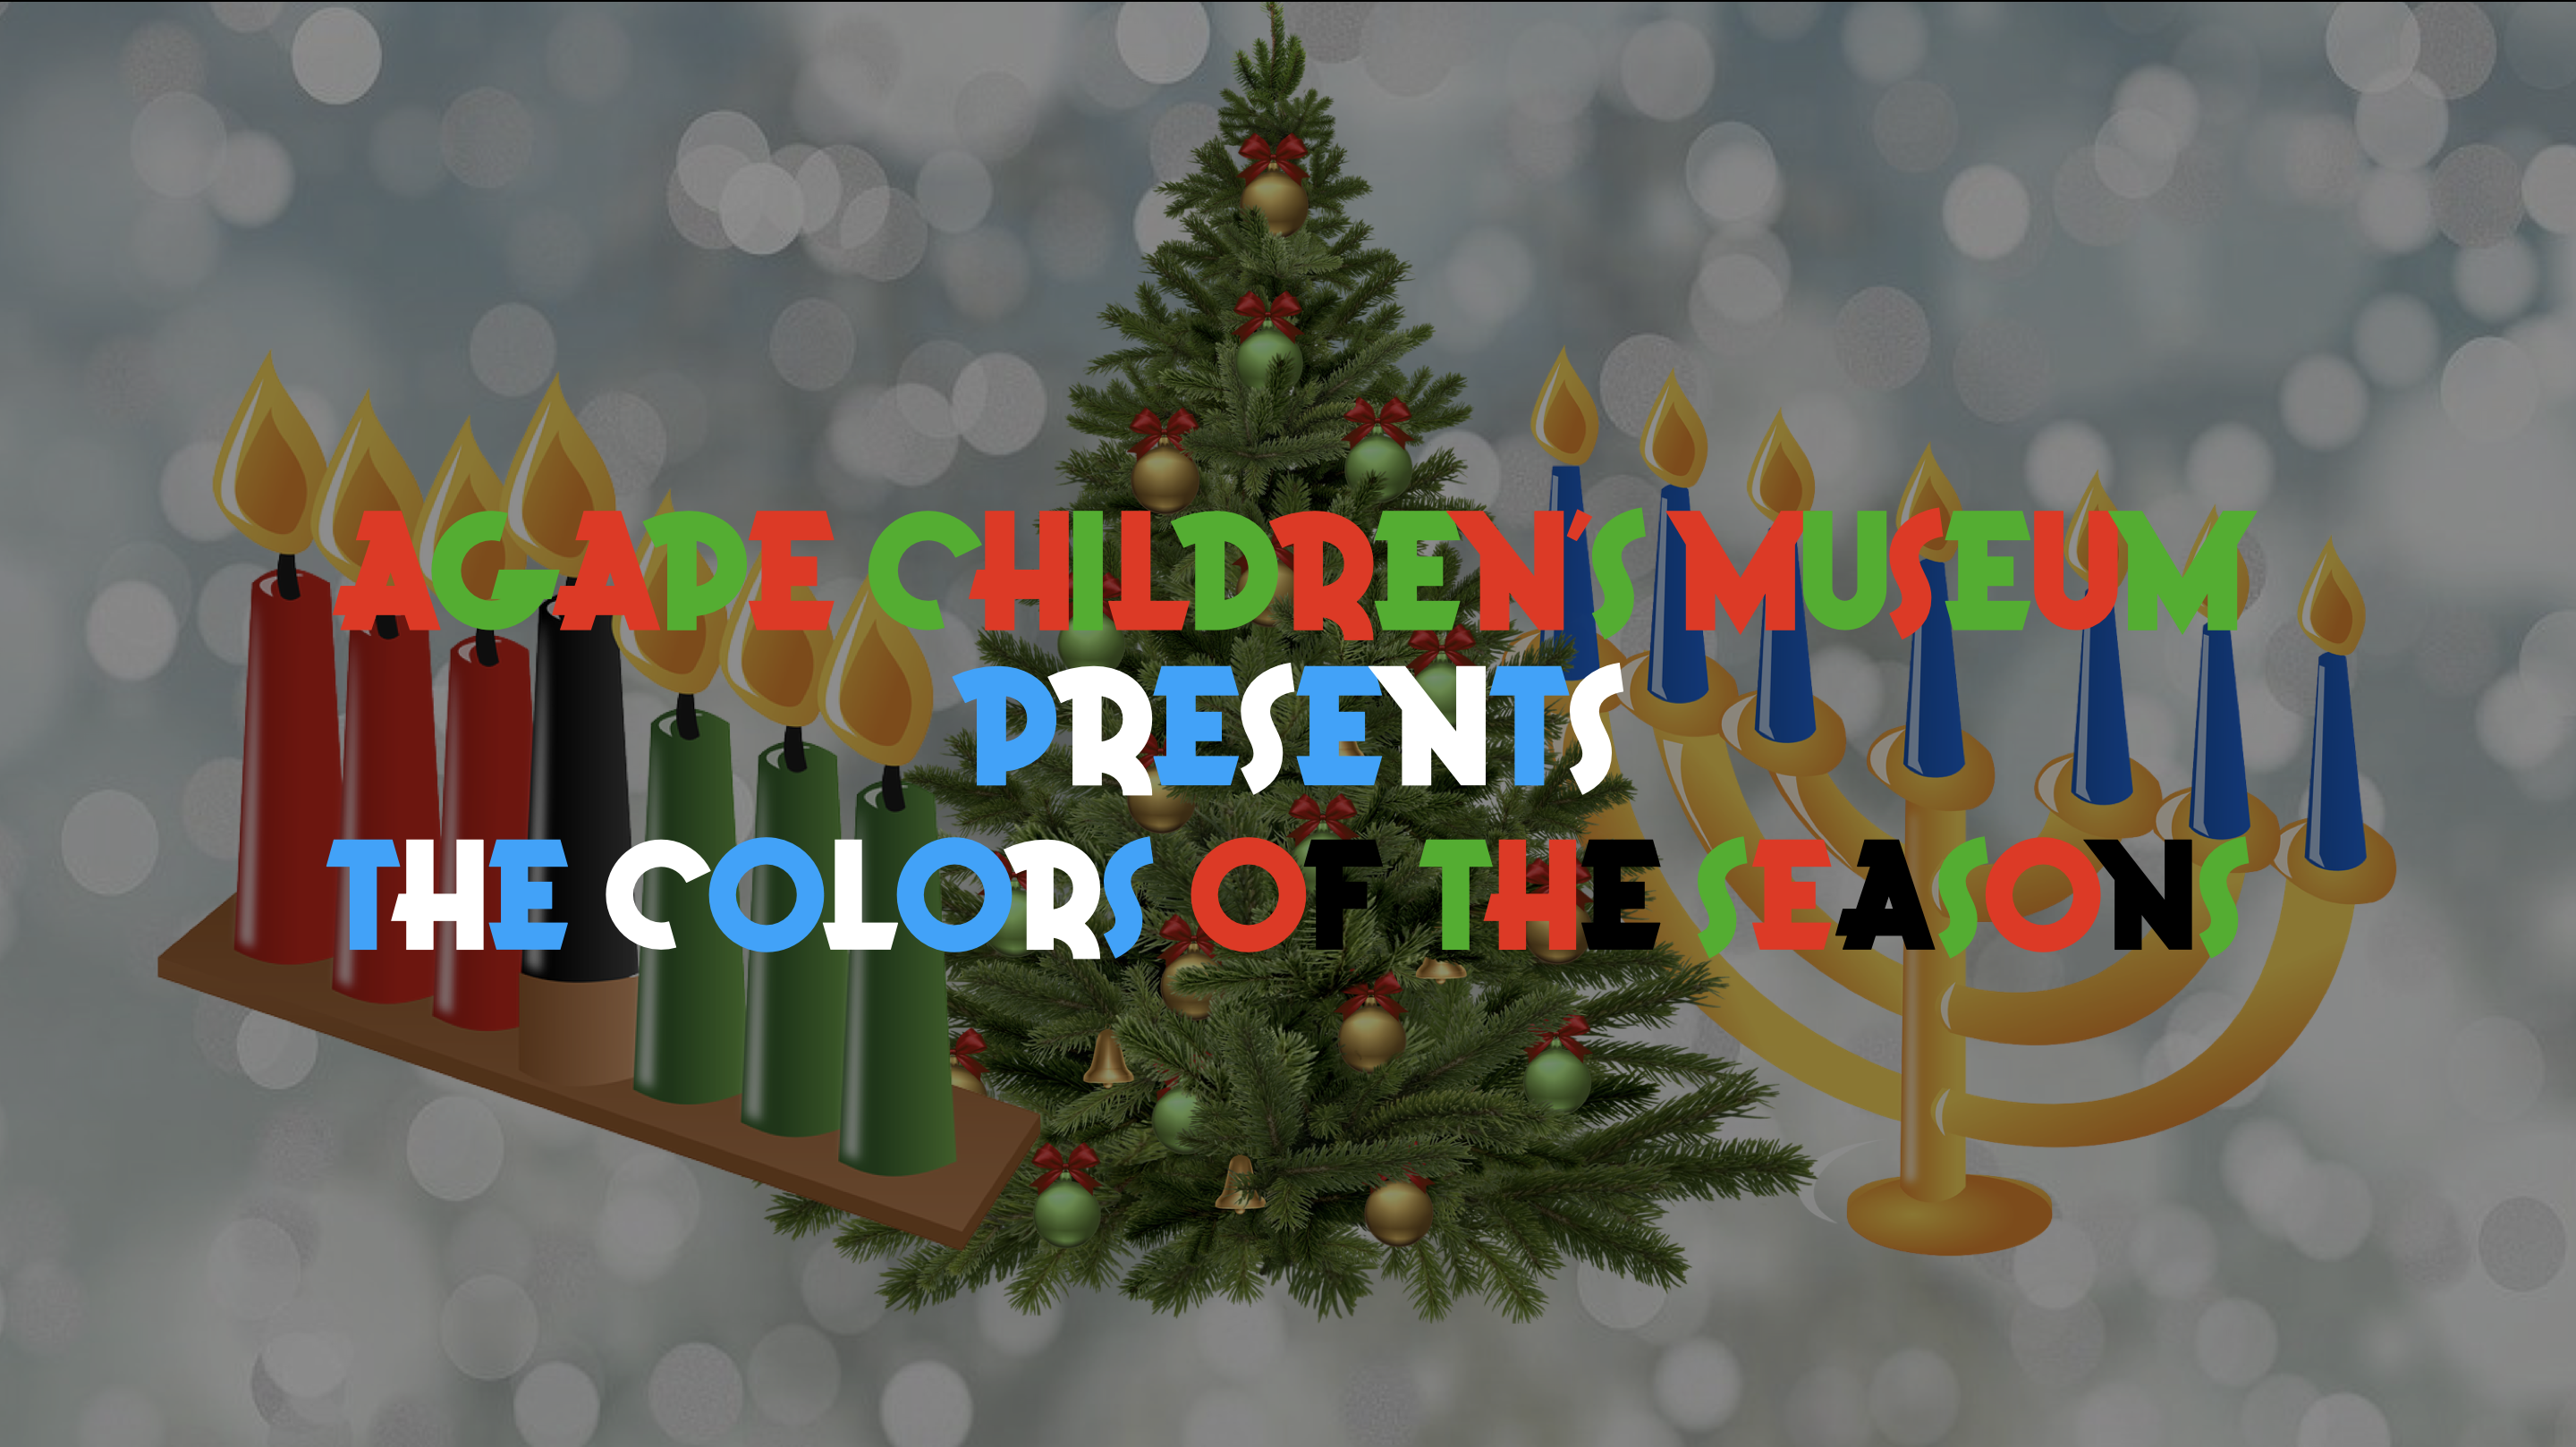 ACM The Colors of the Season 2020